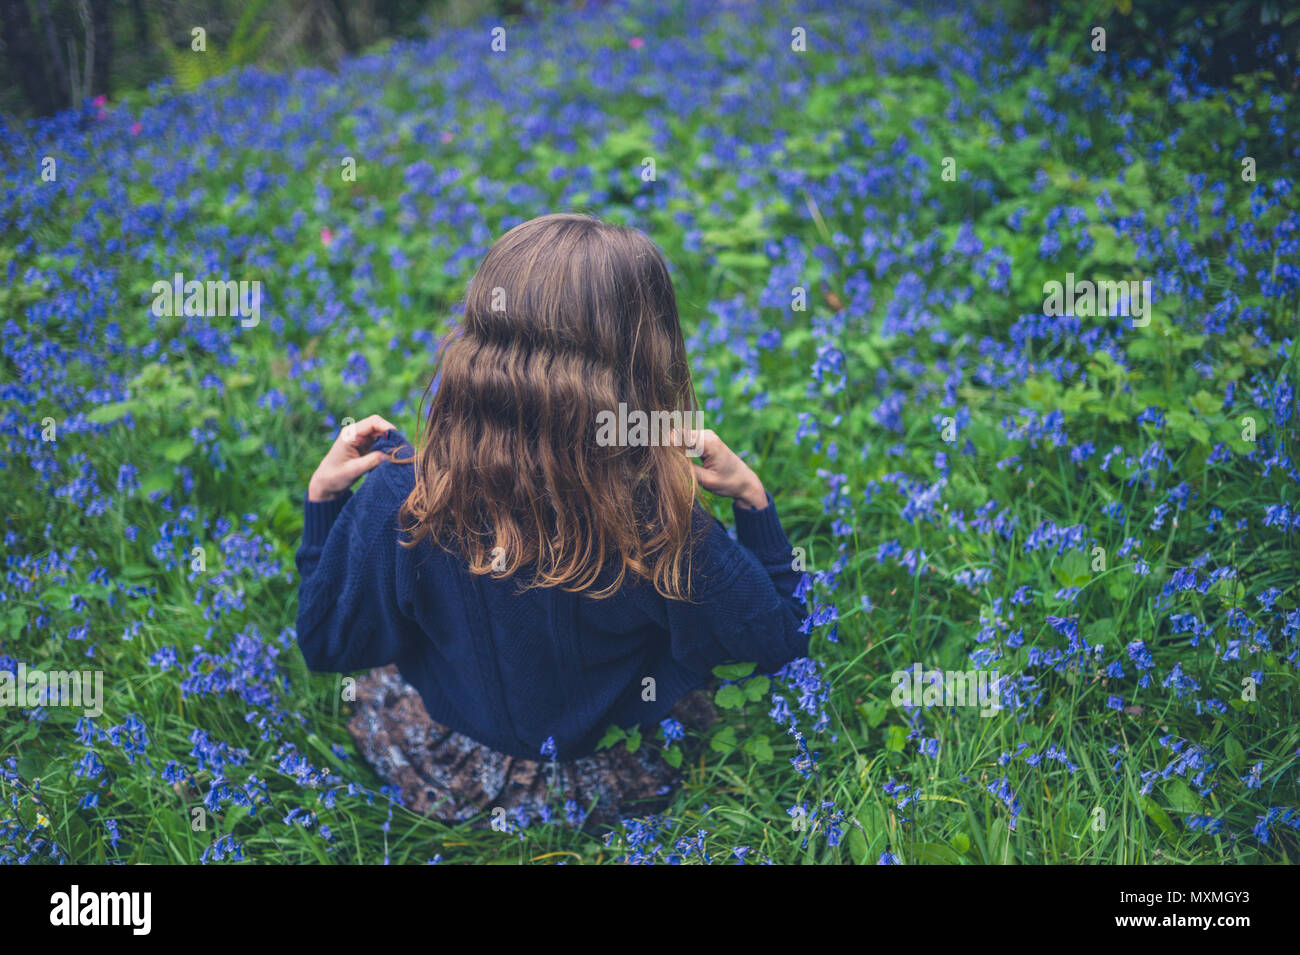 A young woman is sitting in a meadow of bluebells - Stock Image